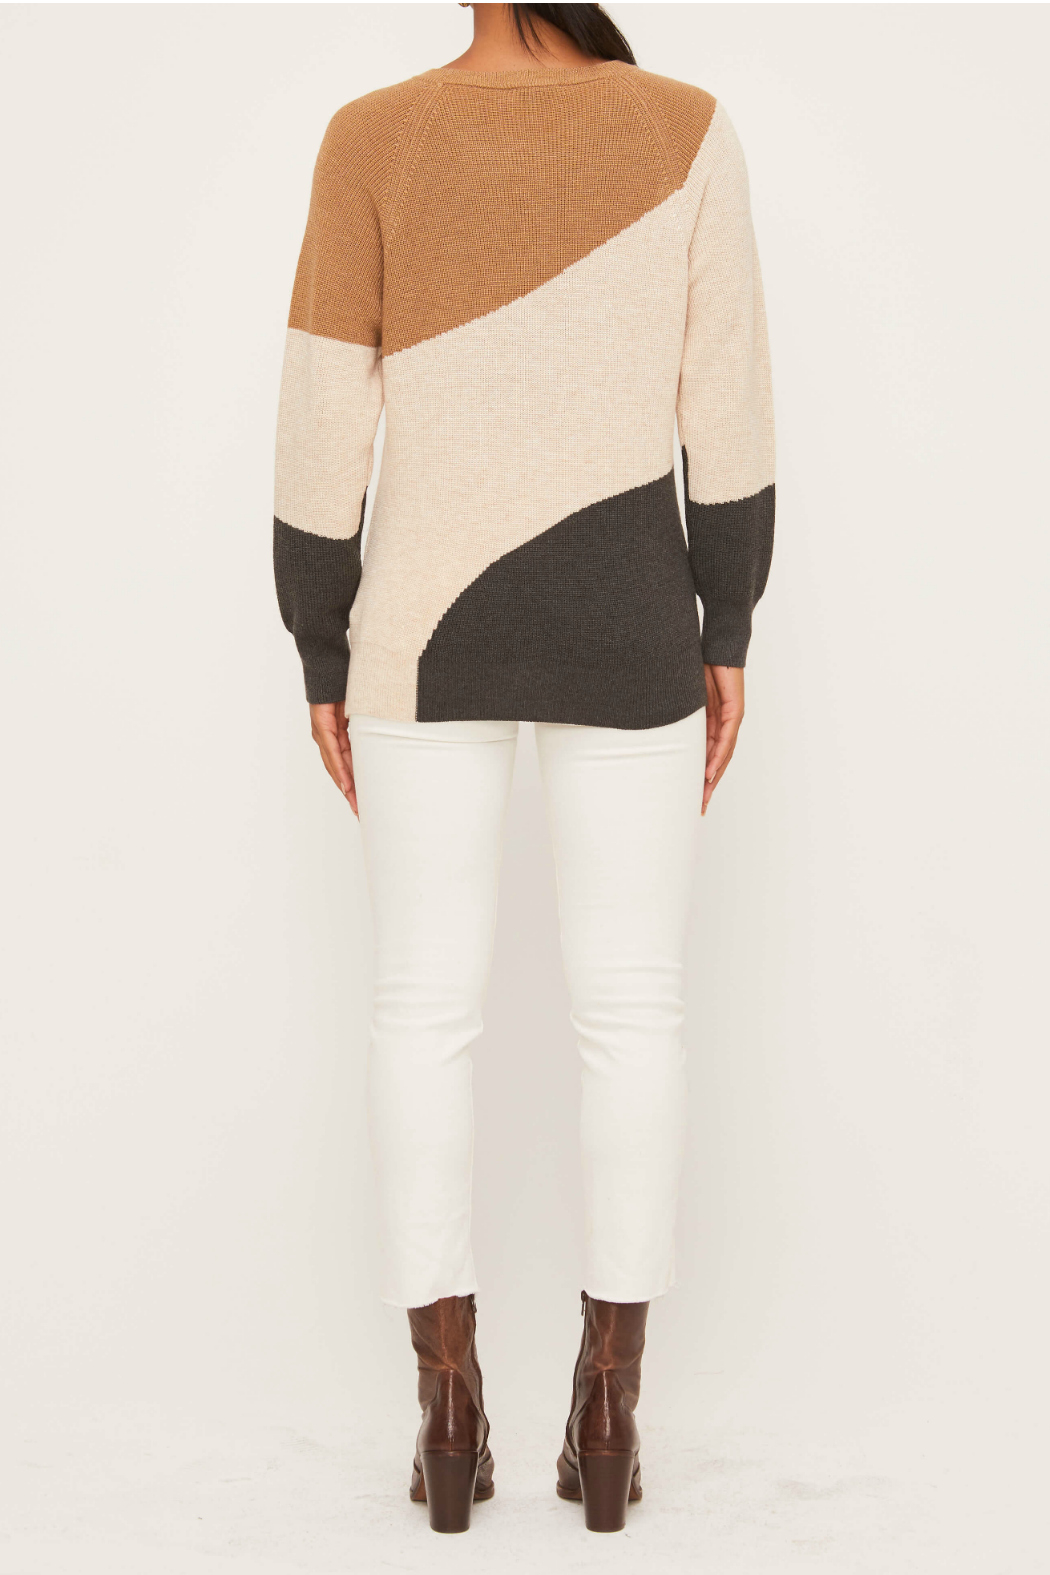 Lush  Colorblock Sweater - Front Full Image